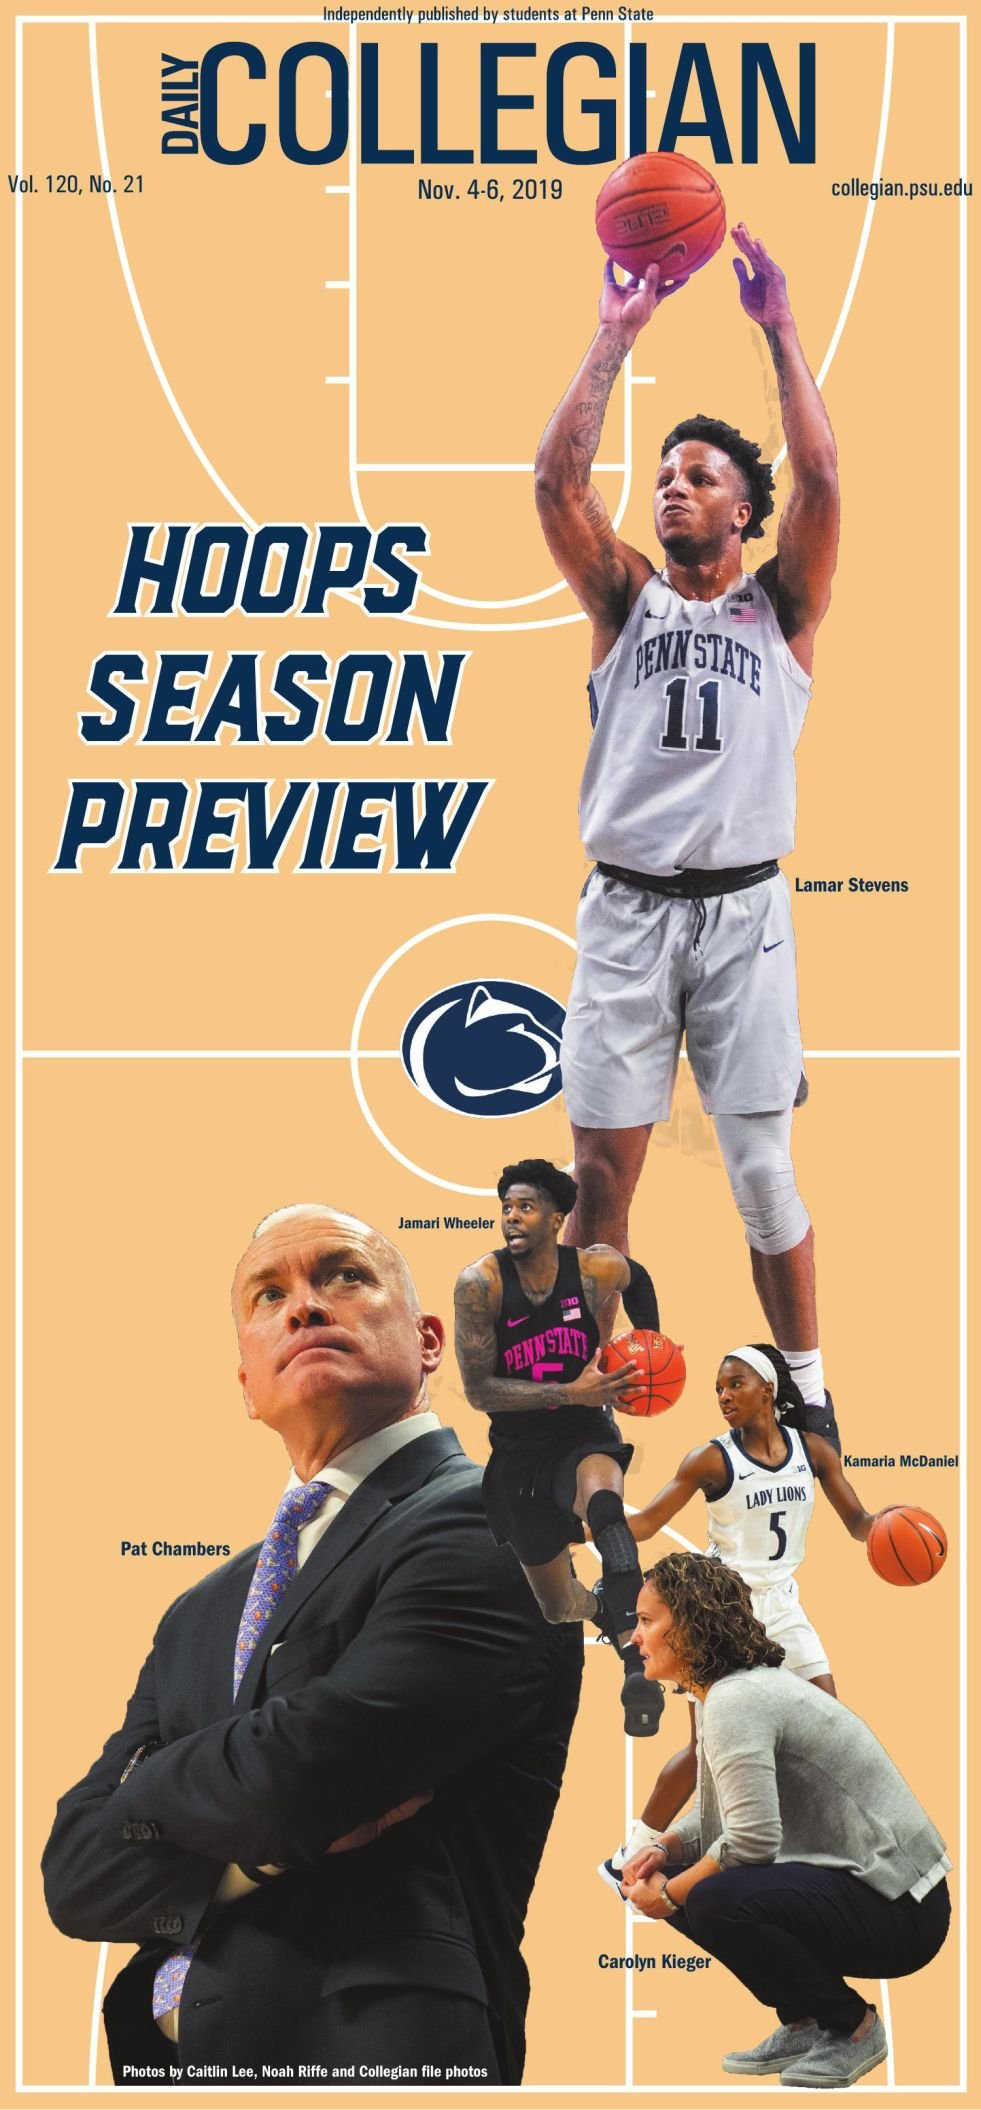 The Daily Collegian for Nov. 4, 2019